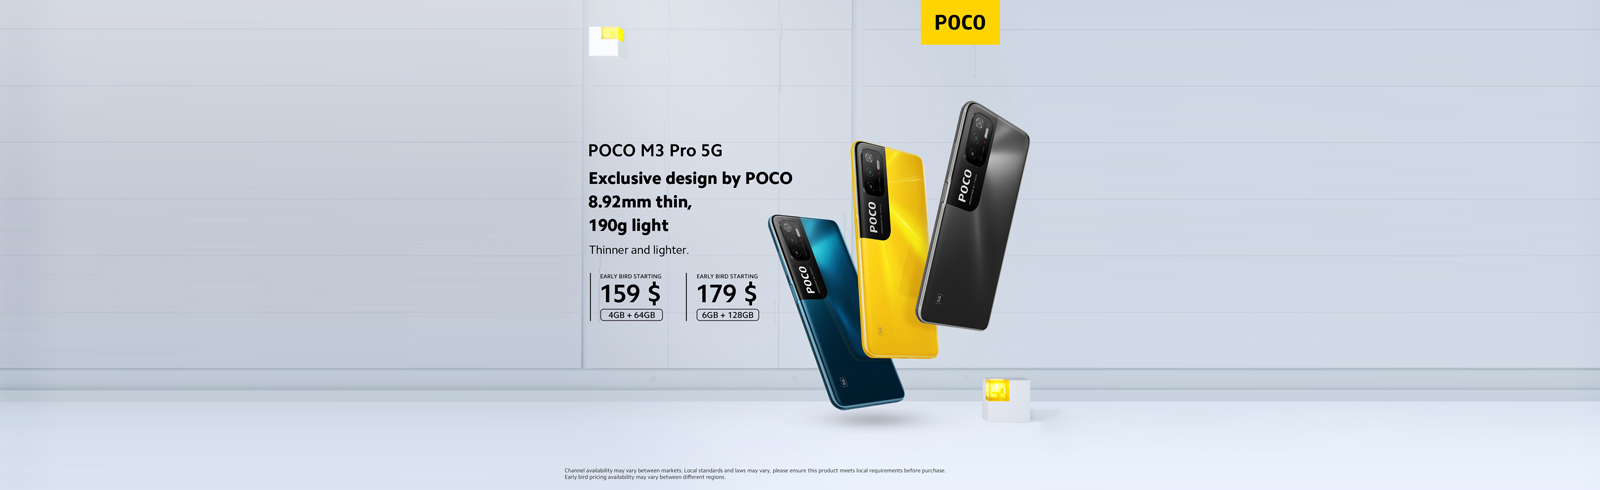 Our in-depth POCO M3 Pro 5G review is ready